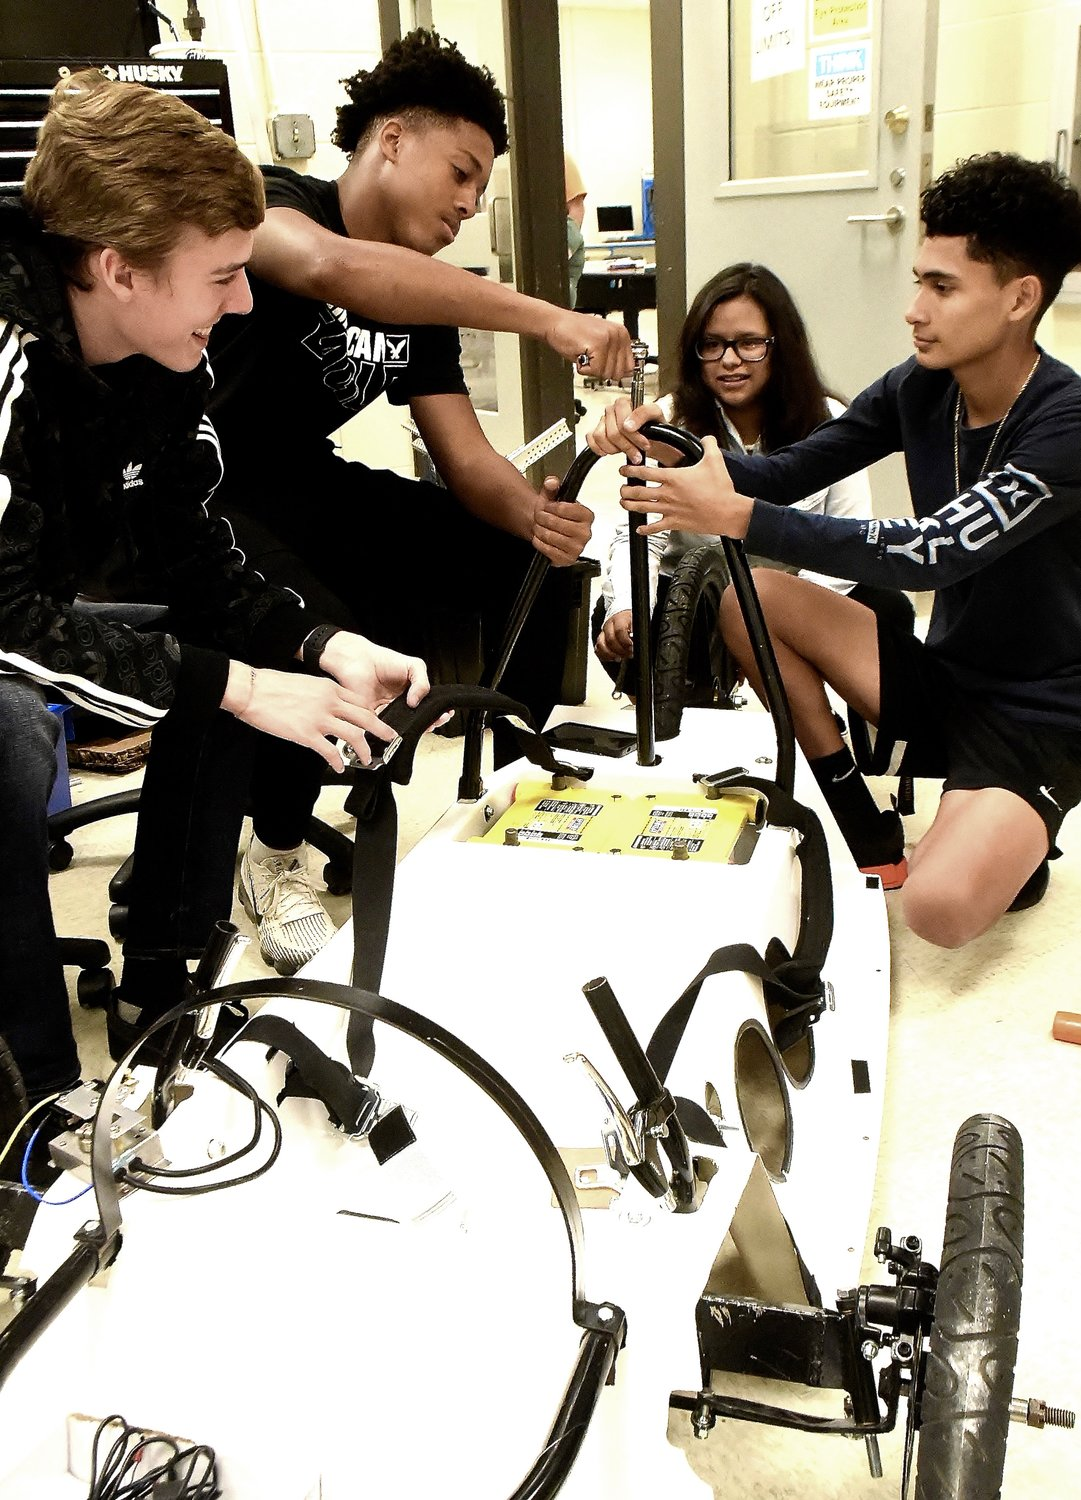 Bartow County College & Career Academy mechatronics students, from left, Logan Queen, Ja'Maury Johnson, Britany Gomez, and Omar Garcia work on the electric car they built to participate in Tellus Science Museum's Heavy Metal in Motion event Saturday from 10 a.m. to 4 p.m.